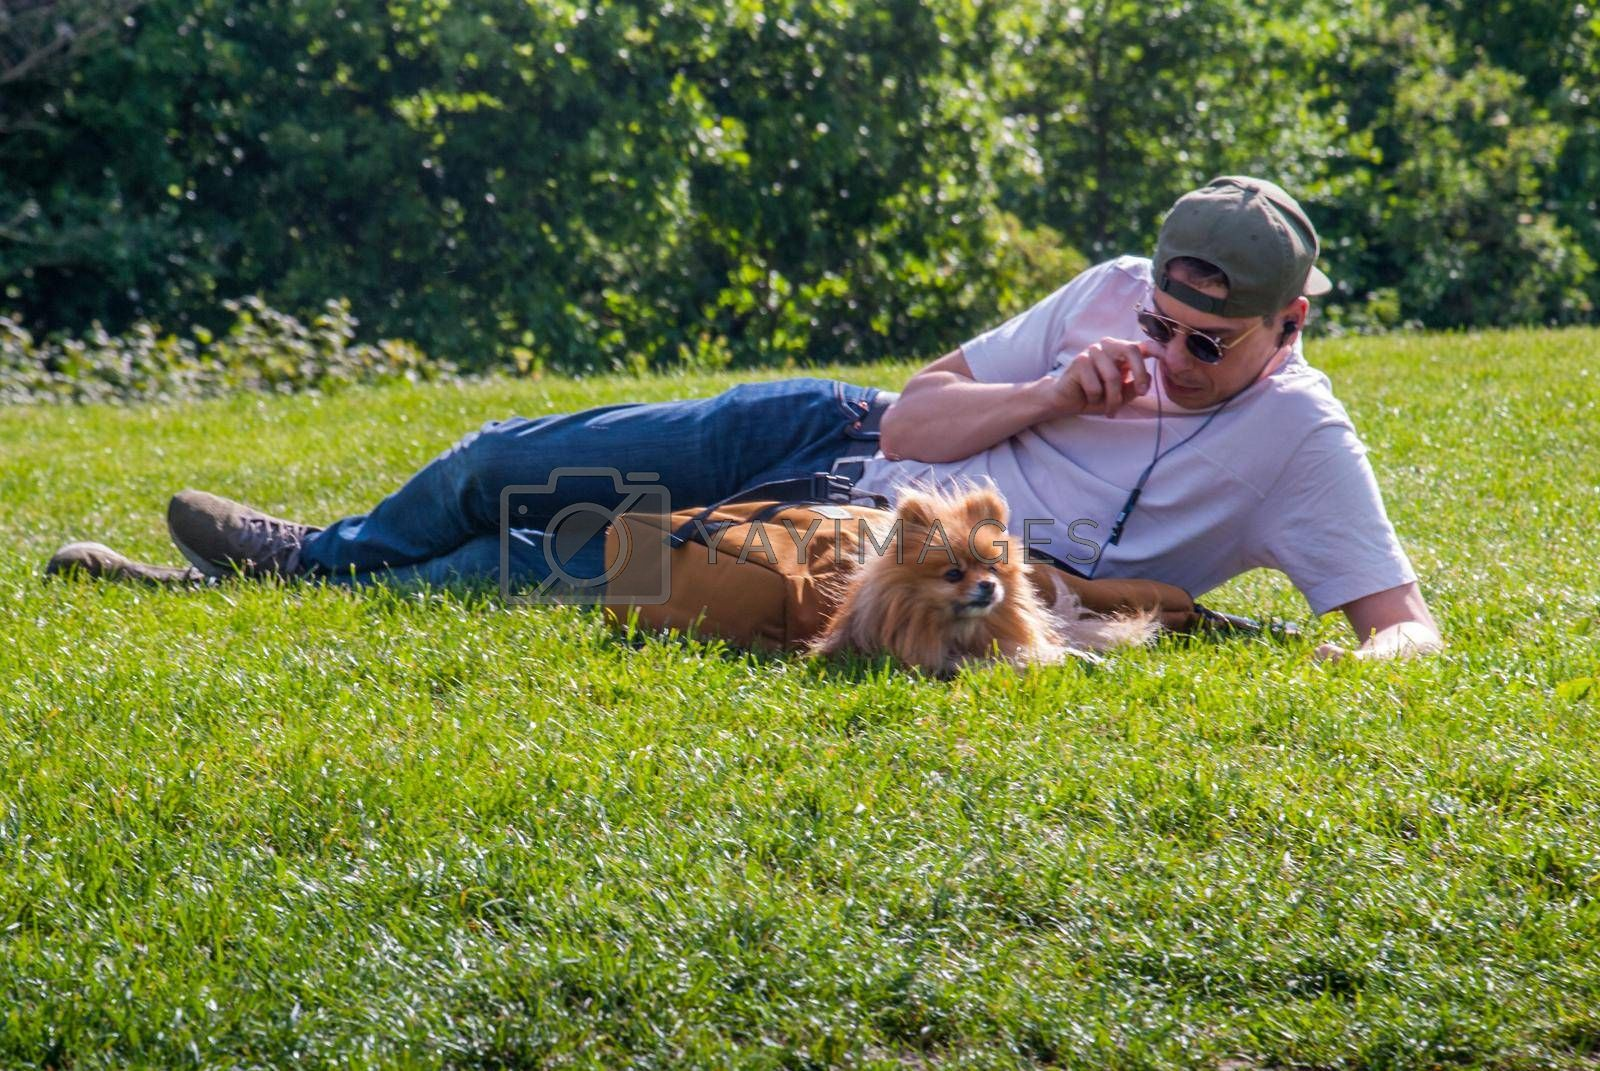 London - 21 May 2019 - A young man and a Cute Pomeranian dog chilling on green grass grass in the park.